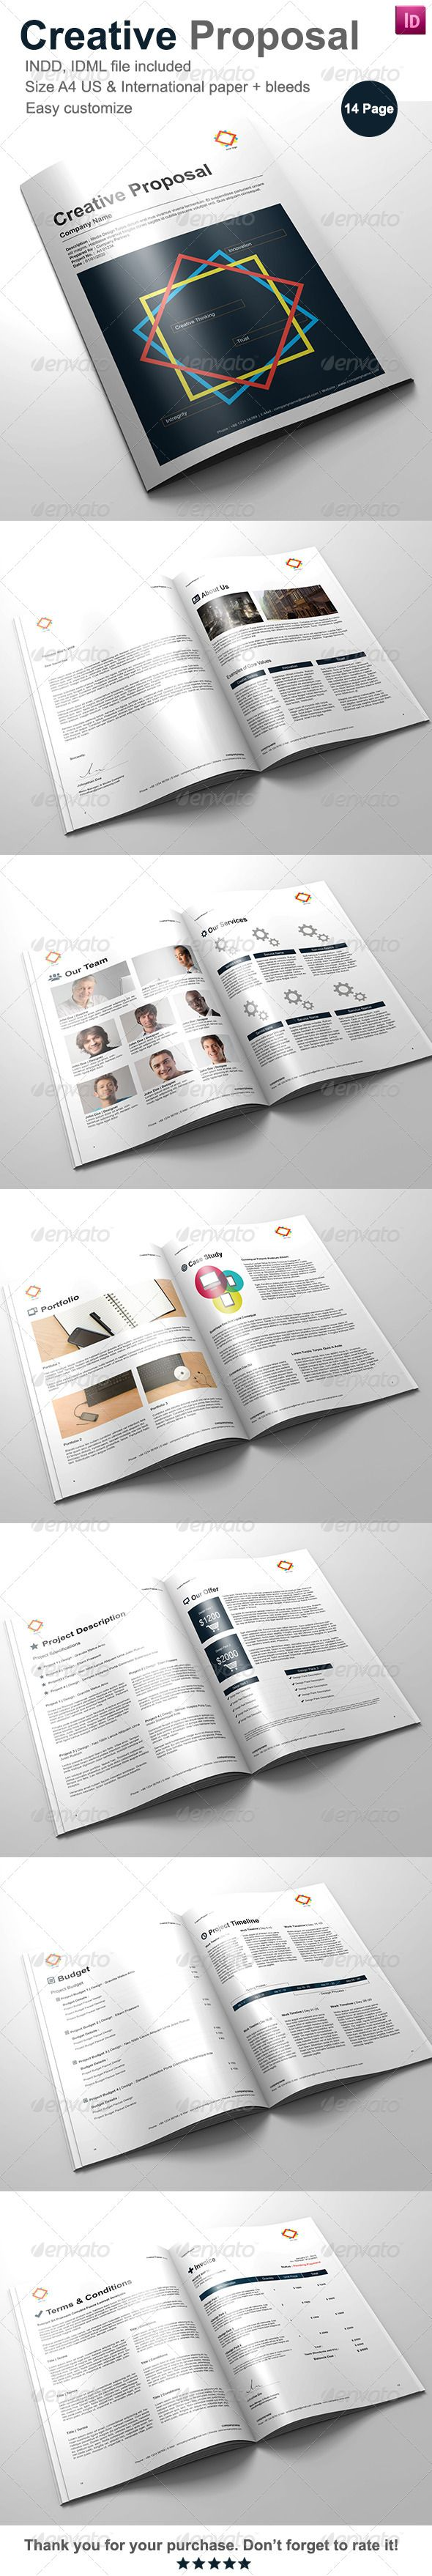 Commercial Proposal Format Prepossessing 504 Best Business Proposal Images On Pinterest  Proposal Templates .